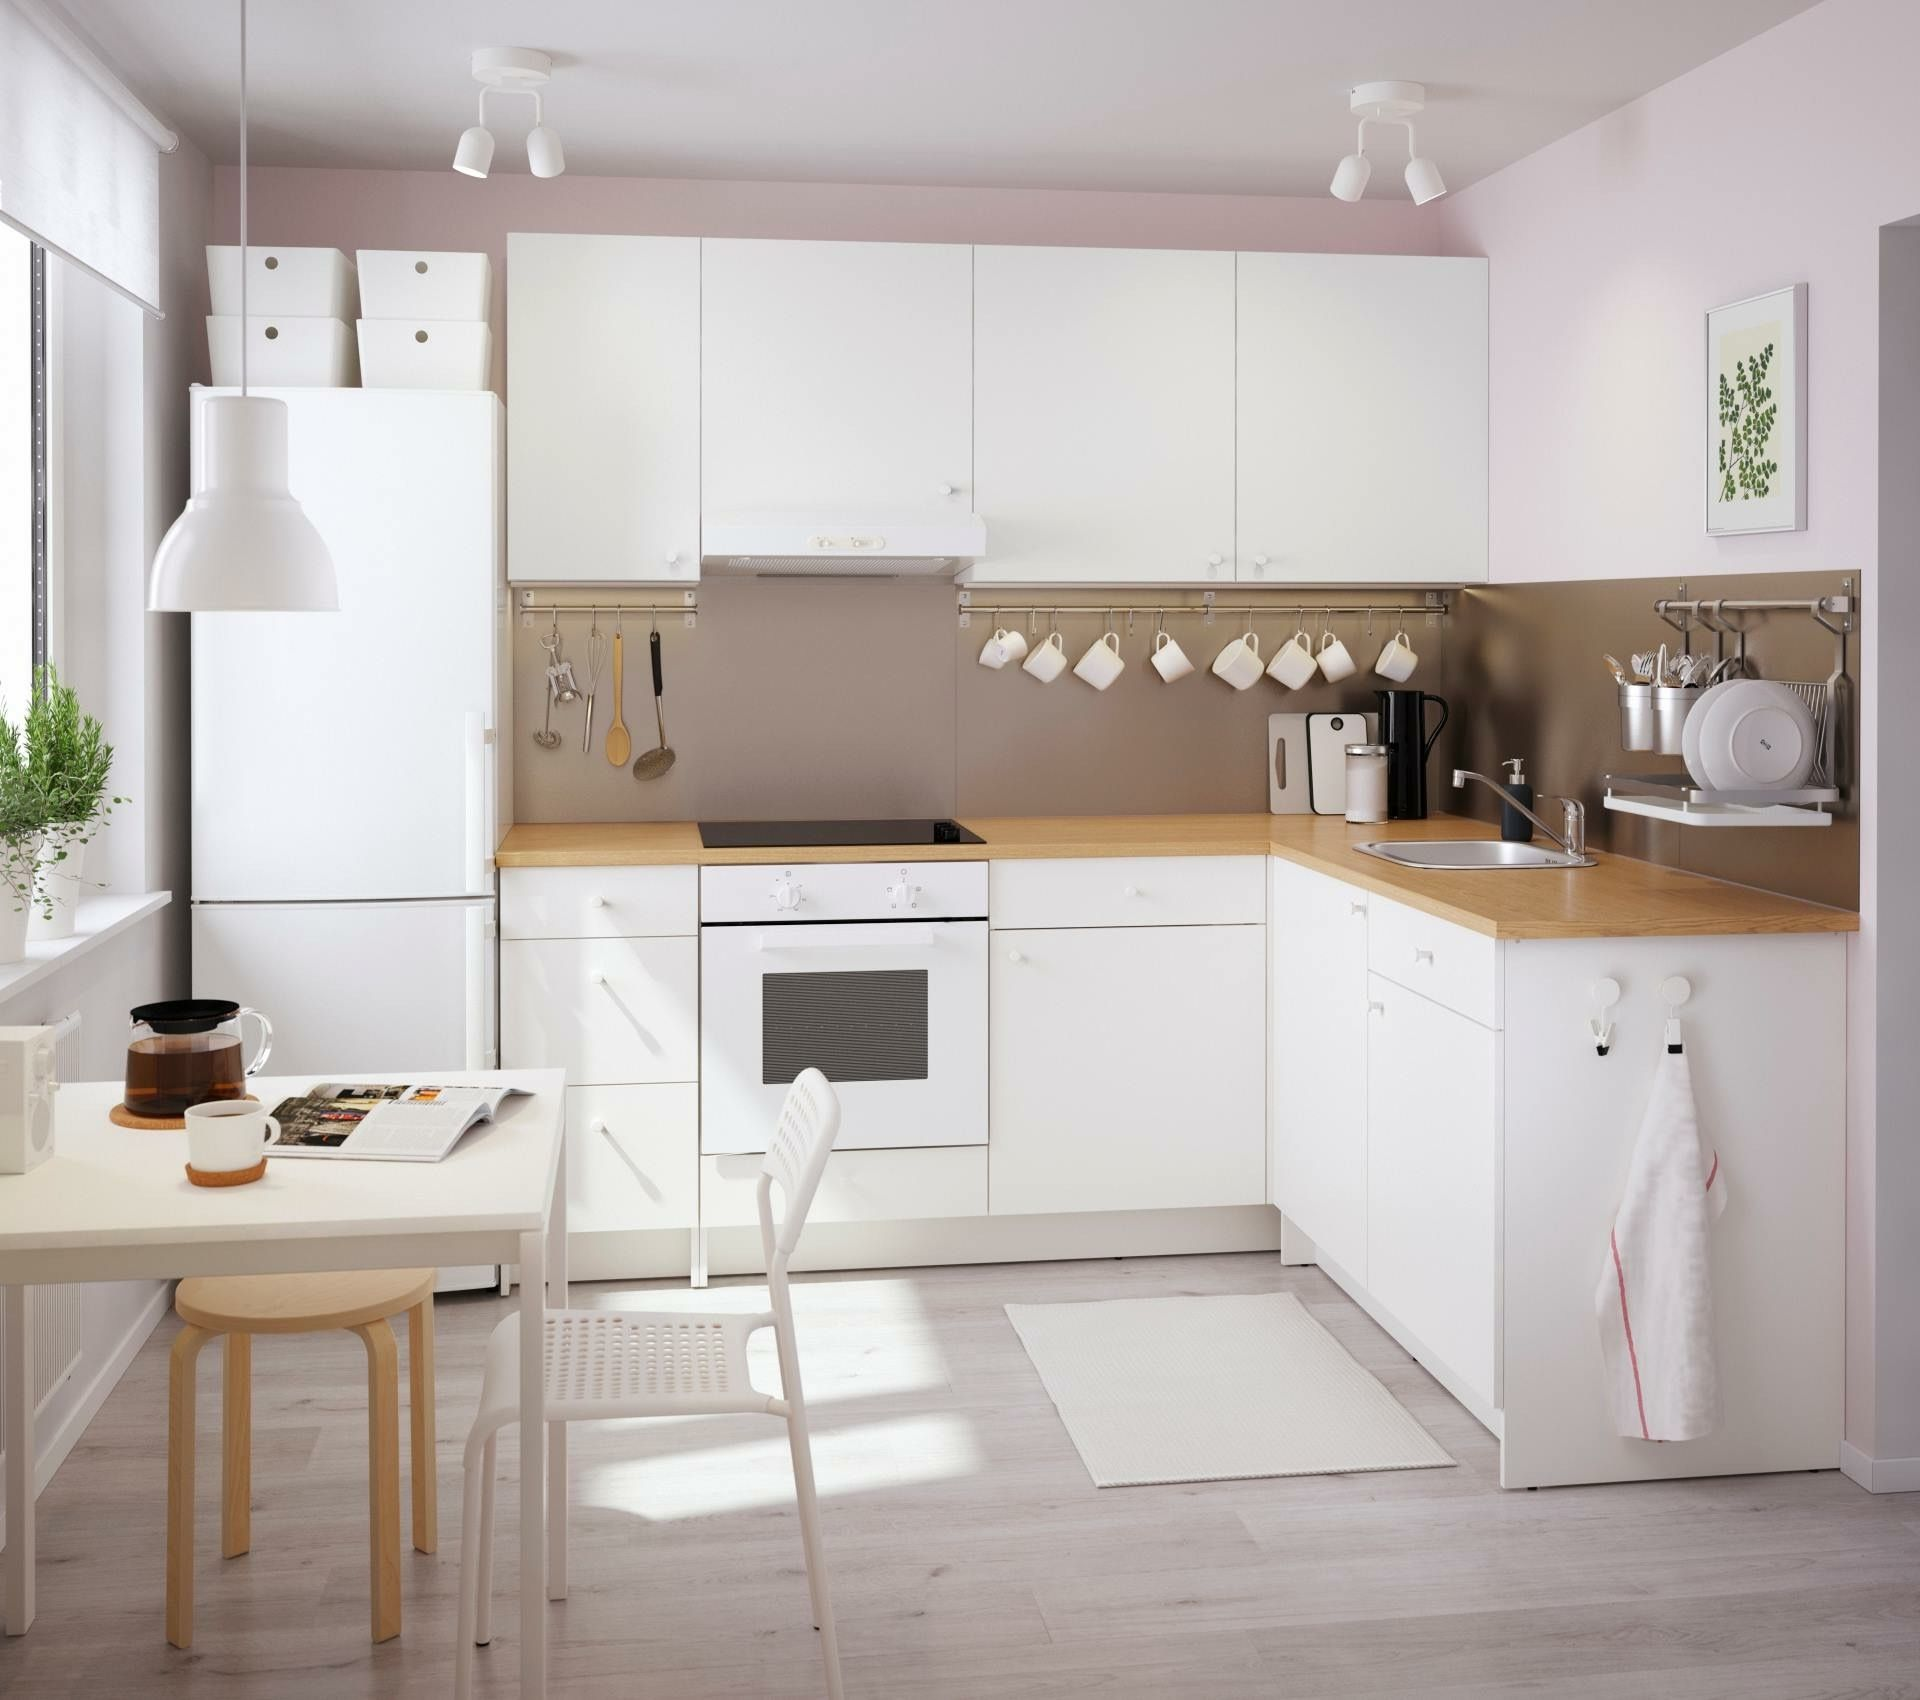 Eti- kitchen corner | eti project | Pinterest | Küche, Ikea küche ...